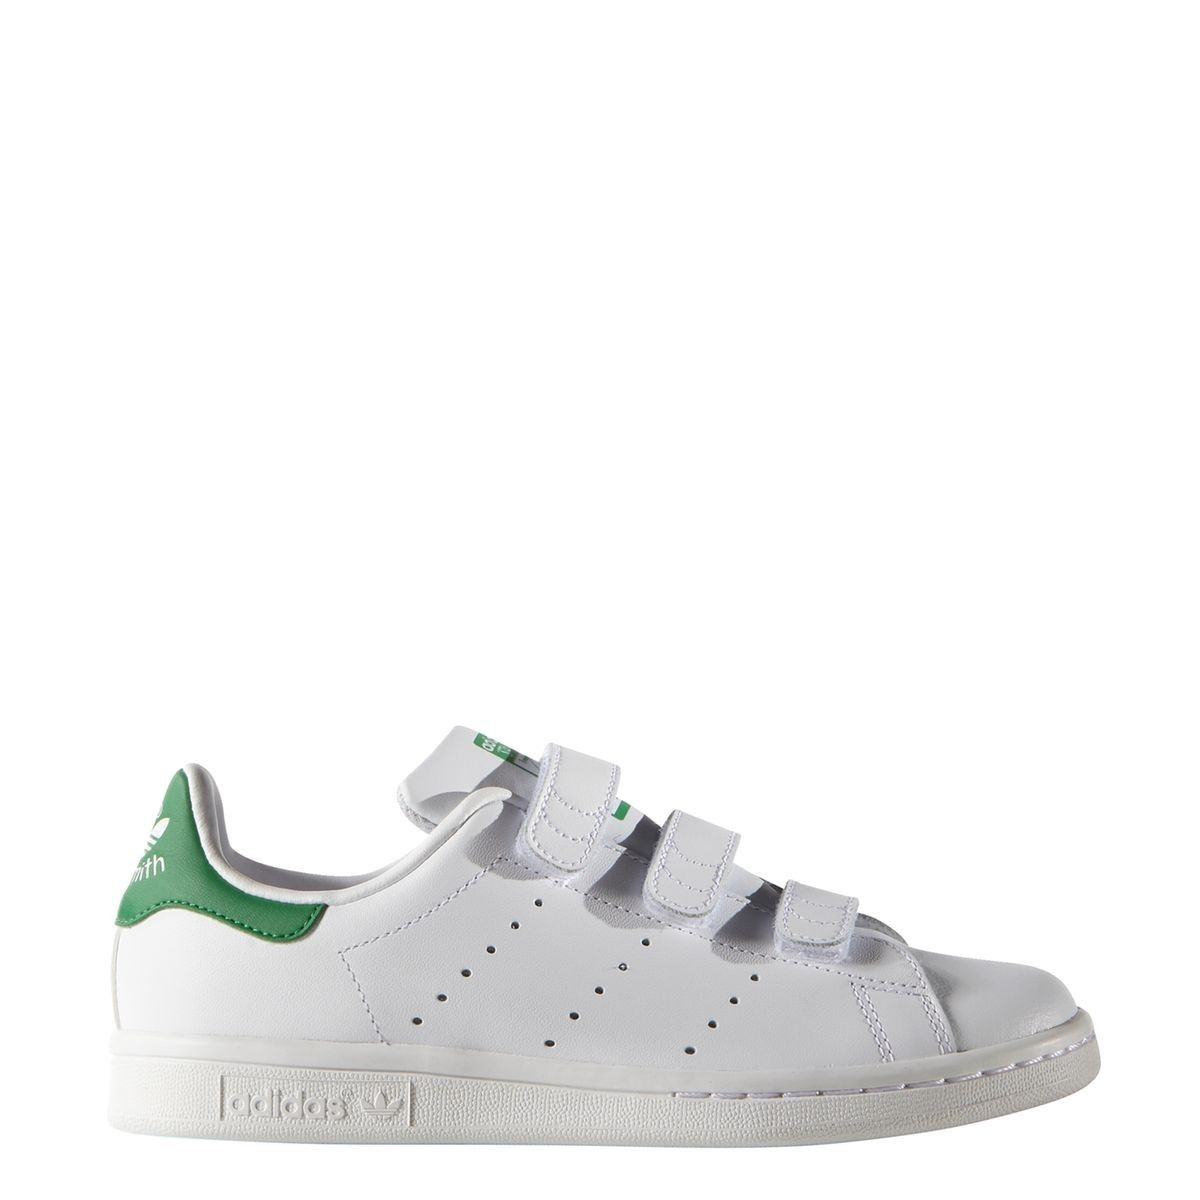 adidas stan smith scratch femme 38